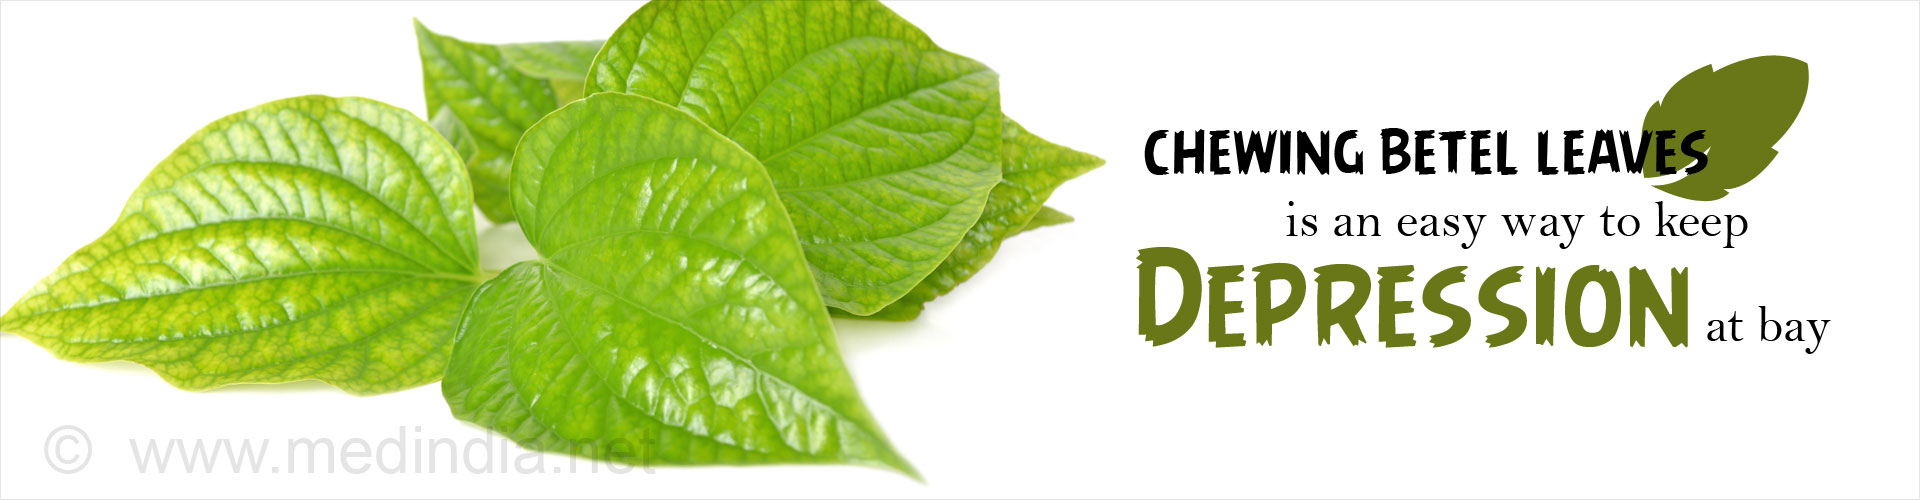 Chewing betel leaves is an easy way to keep depression at bay